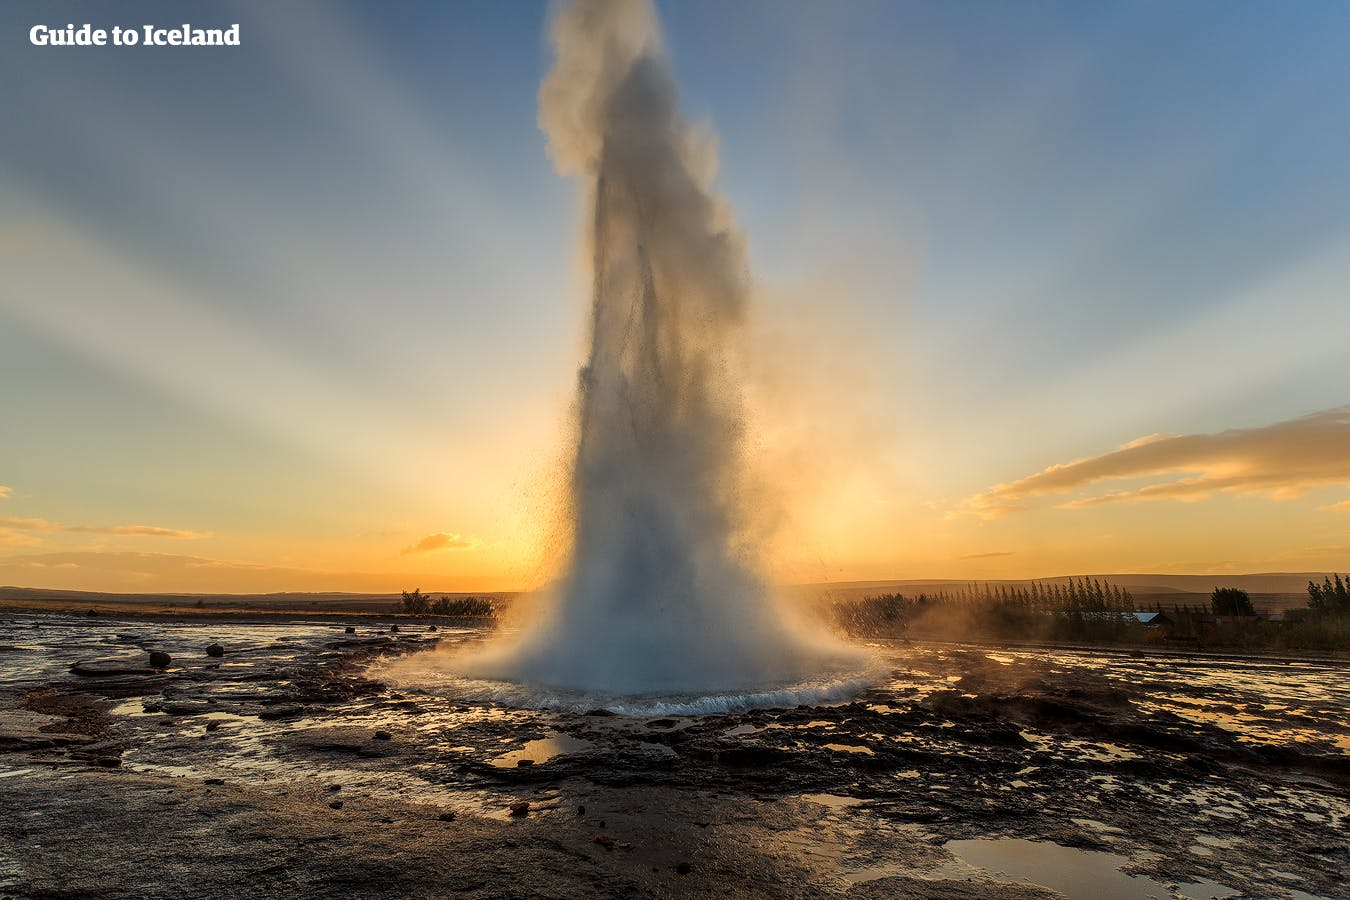 Iceland's most famous water feature, Strokkur geyser in Geysir geothermal area